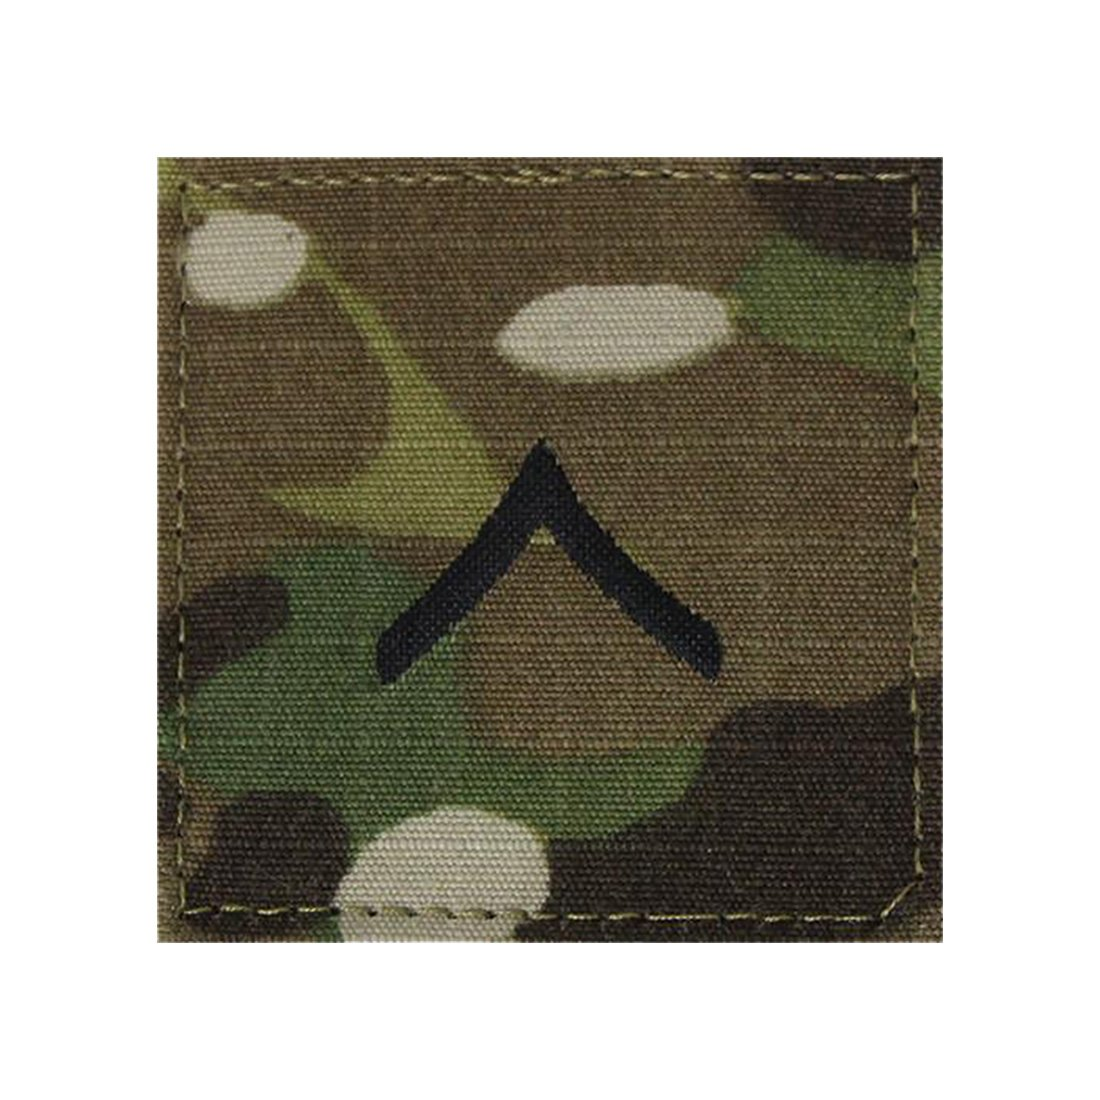 Multicam OCP Rank Insignia With Fastener (PRIVATE) by Uniform Accessories Unlimited Inc (Image #1)